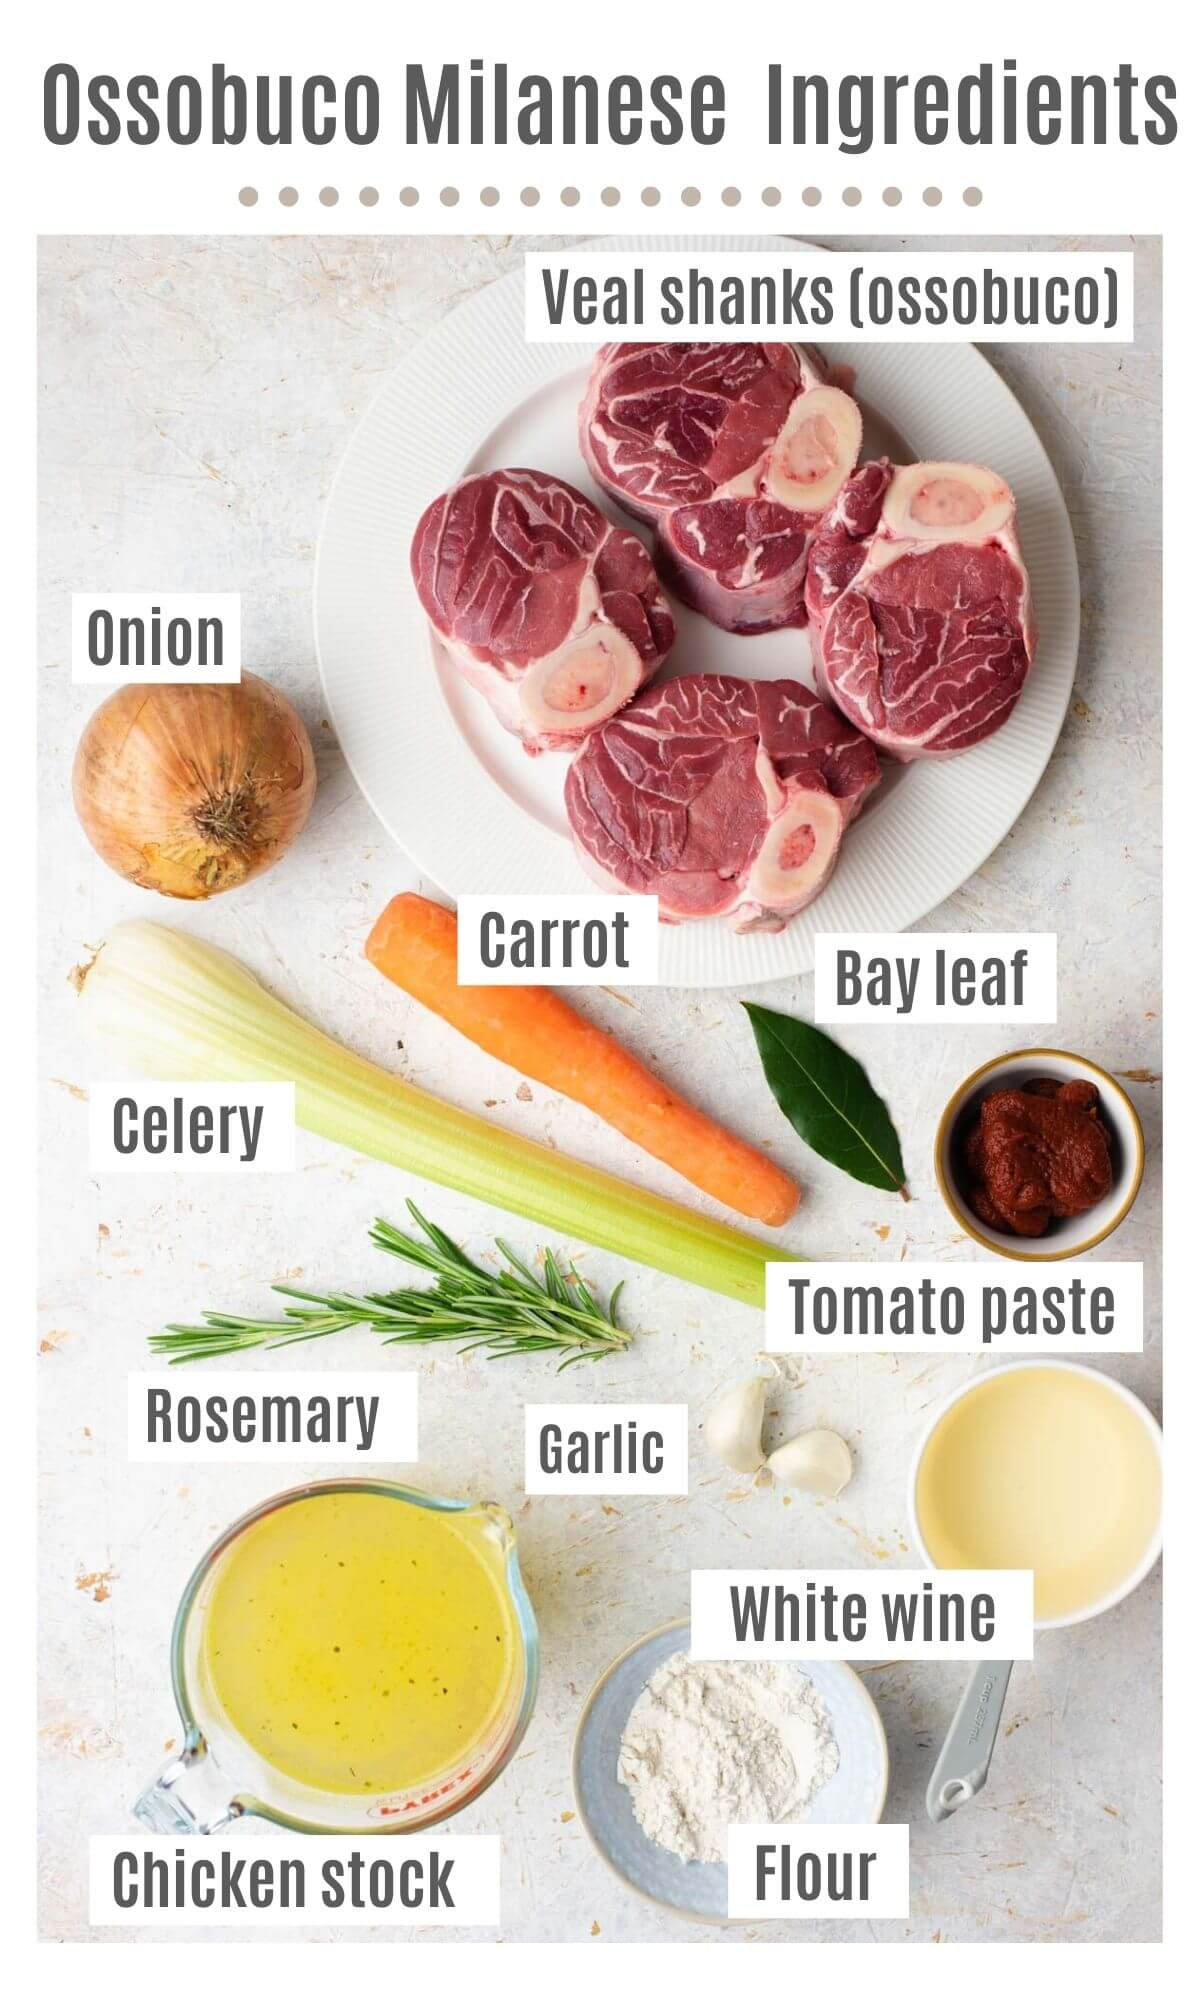 An overhead shot of all the ingredients you need to make Ossobuco Milanese with veal